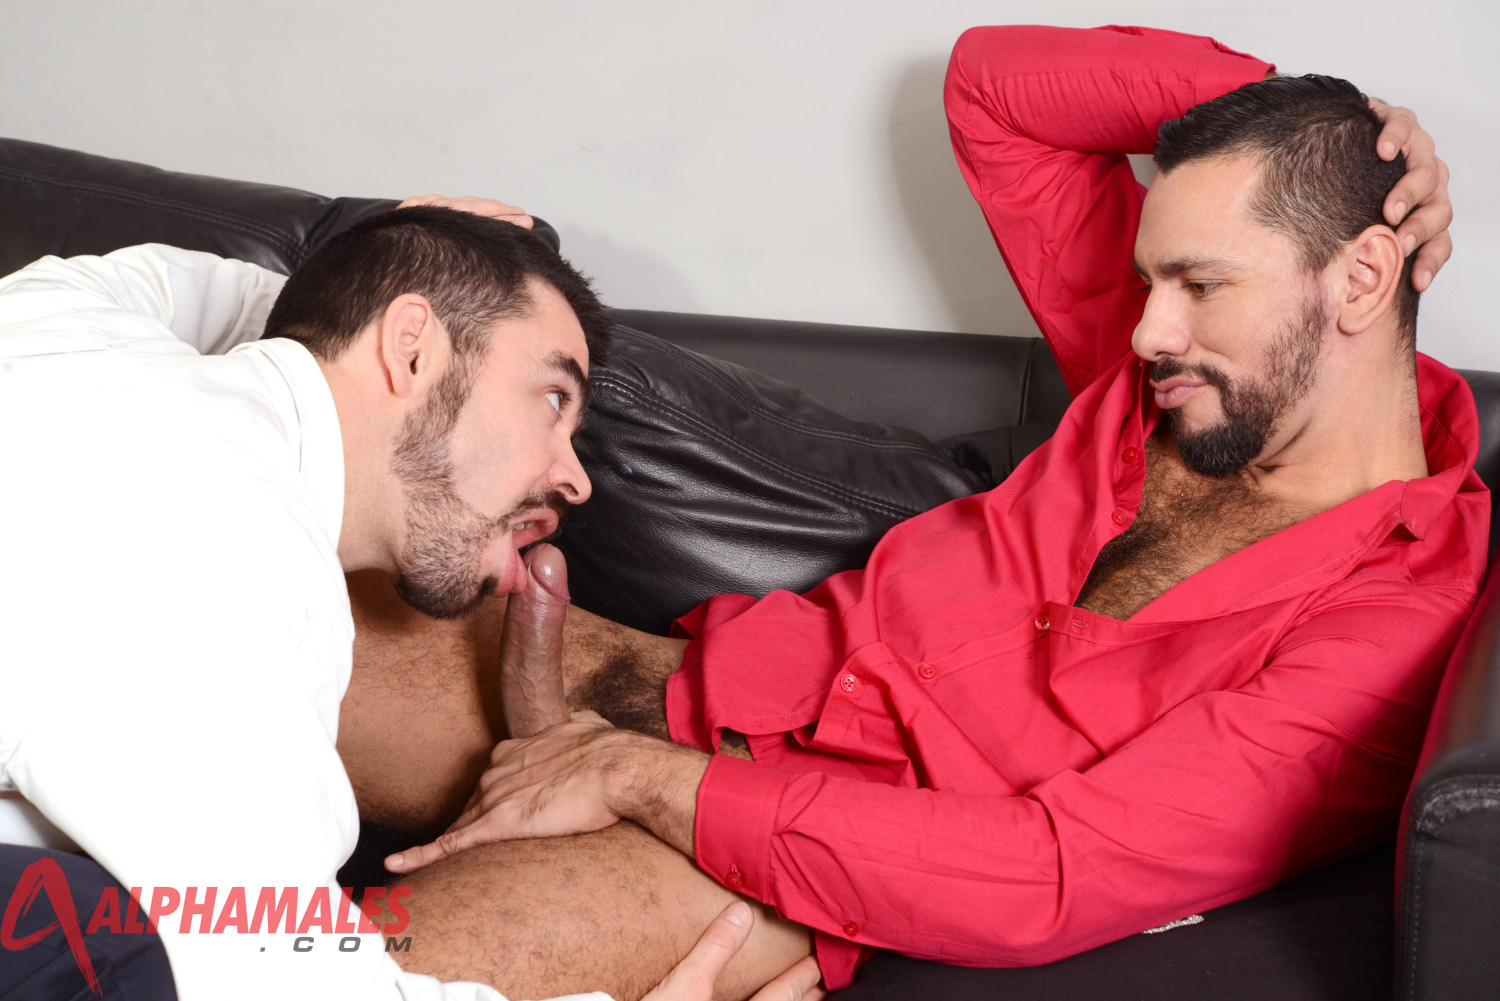 AlphaMales-Dolan-Wolf-and-Tiko-Foot-Massage-Latino-Big-Uncut-Cock-Fucking-Amateur-Gay-Porn-02 Hairy Muscle Guys Foot Massage Leads To Huge Uncut Cock Fucking